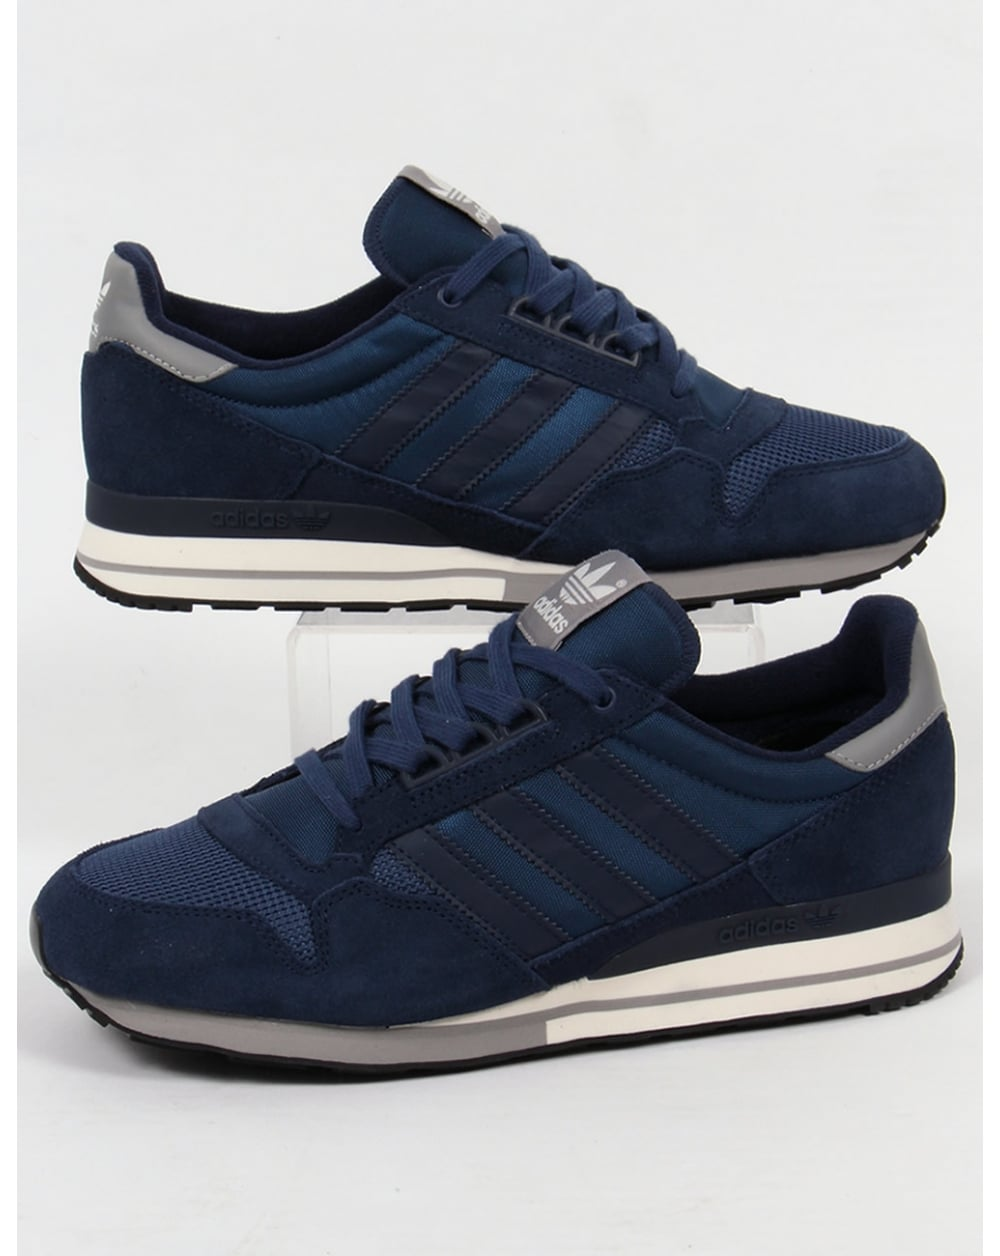 official photos c76f7 f07cb adidas Trainers Adidas ZX 500 OG Trainers NavyWhiteSolid Grey